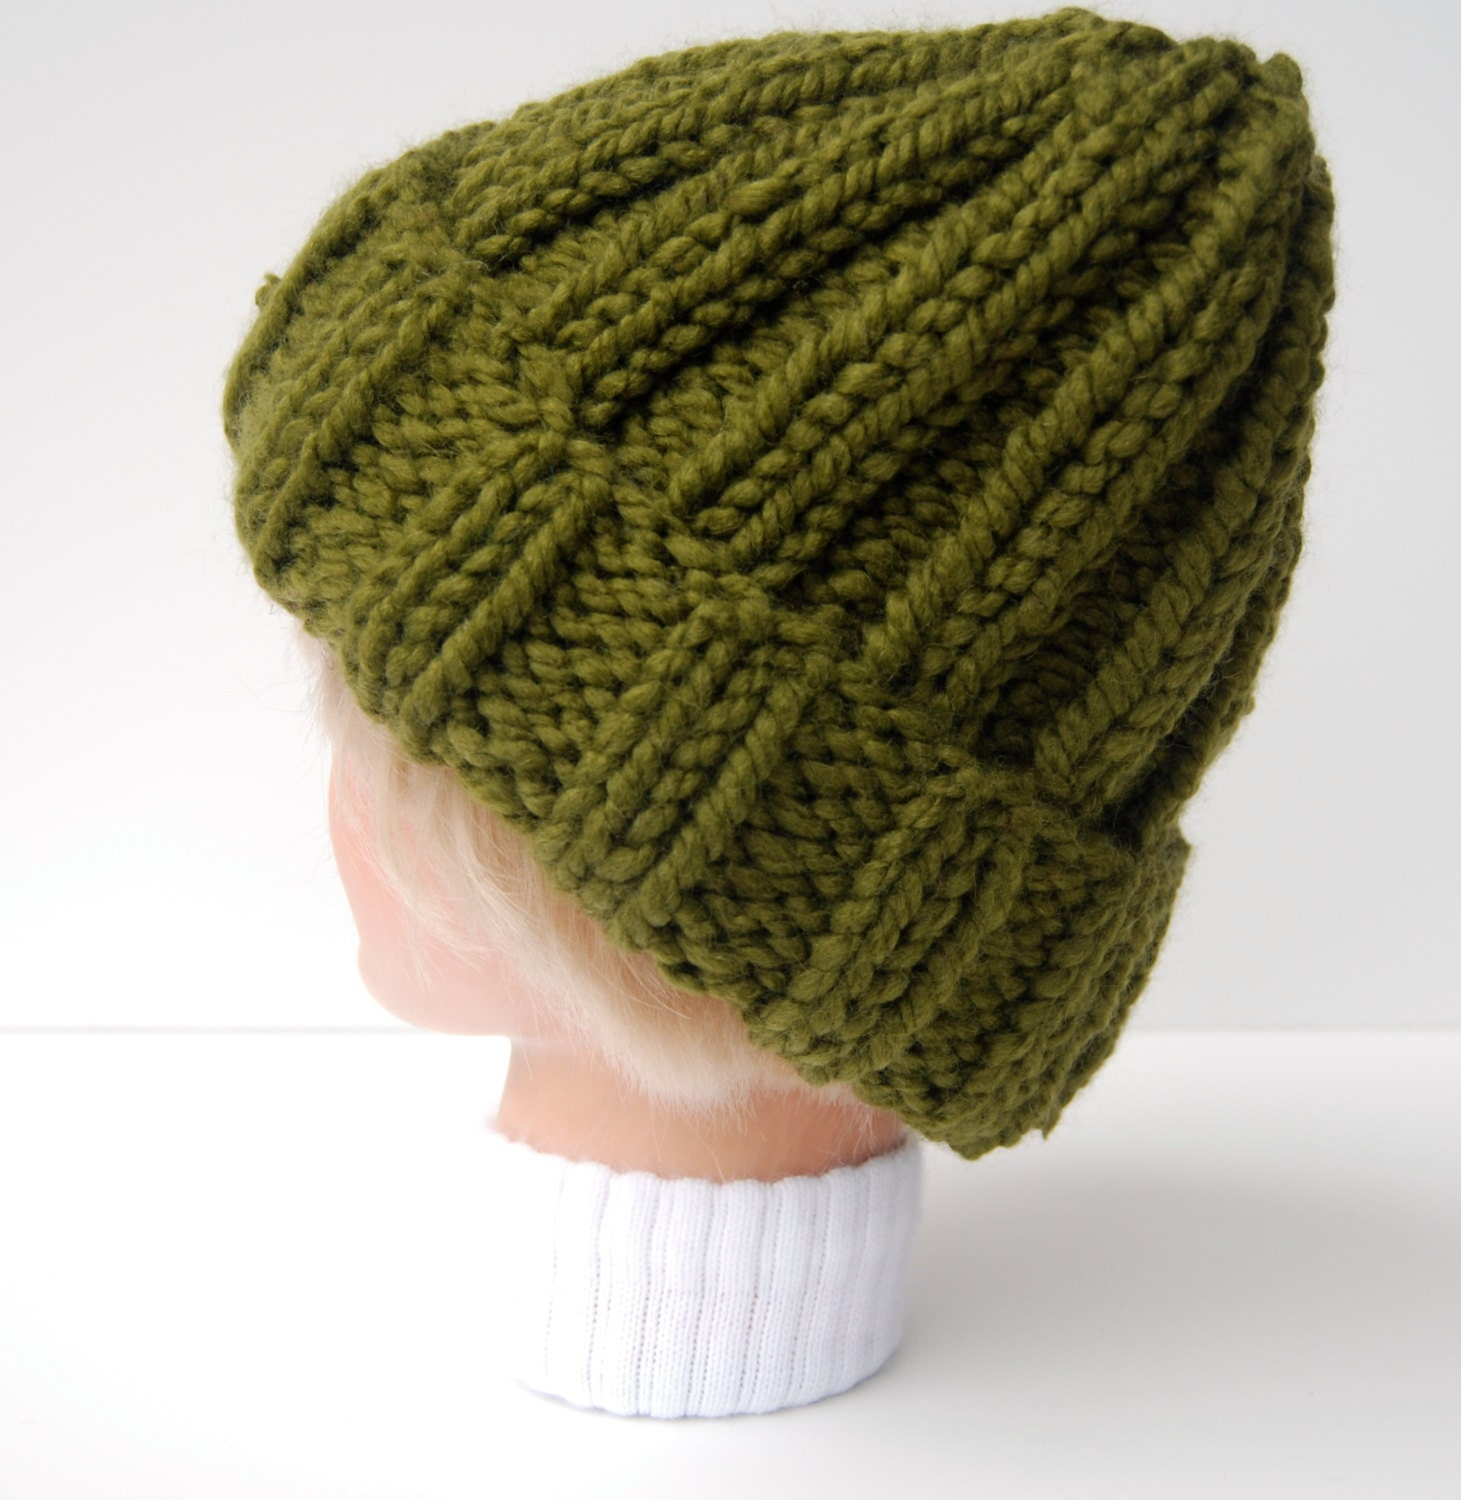 Ribbed beanie knit green hat hand knit hat knit by LoopsAndLines